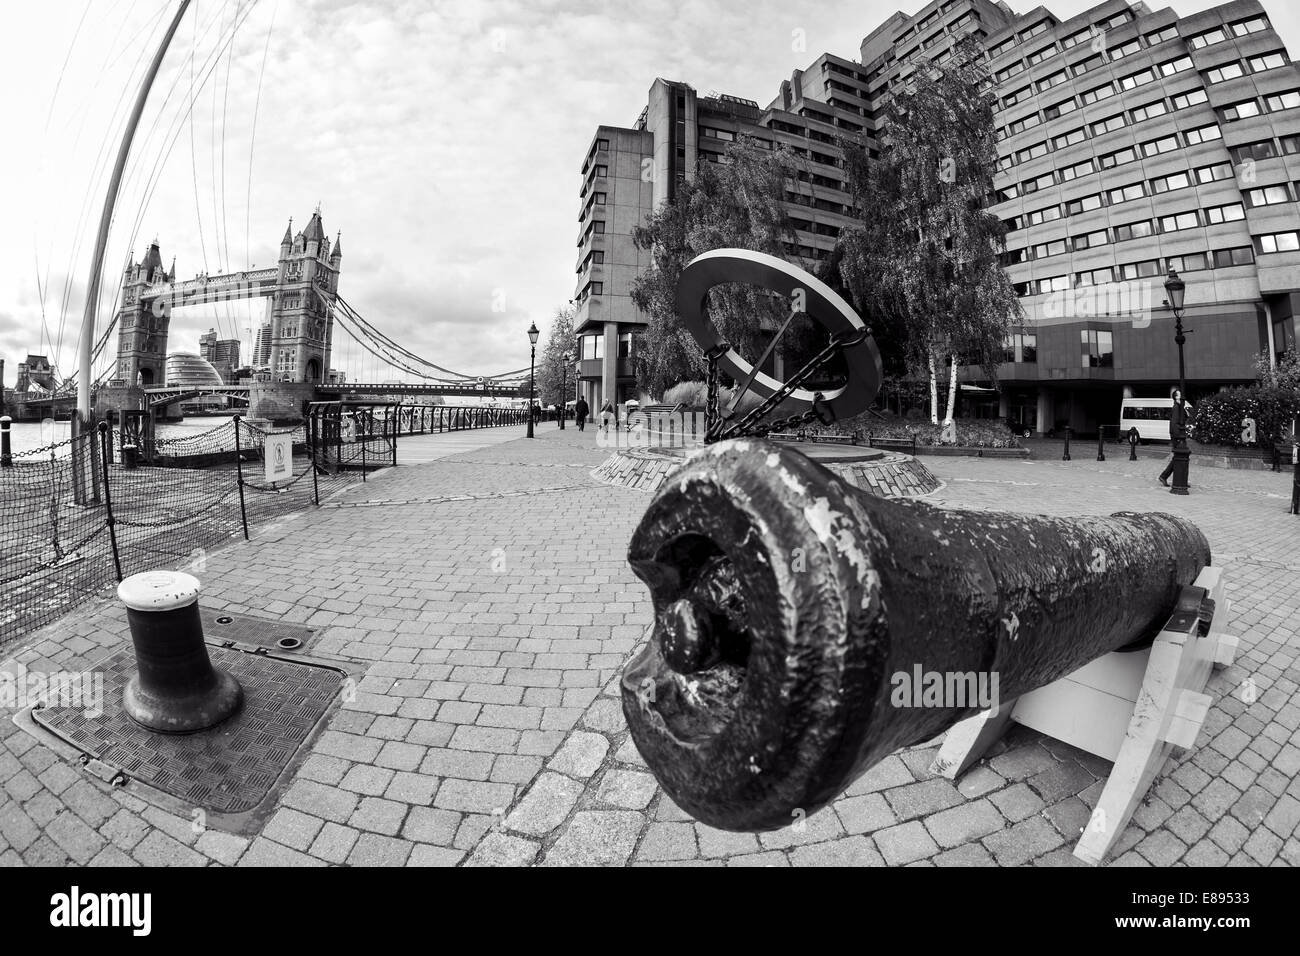 Cannon guarding Thames entrance to St Katharine's Dock, London - Stock Image